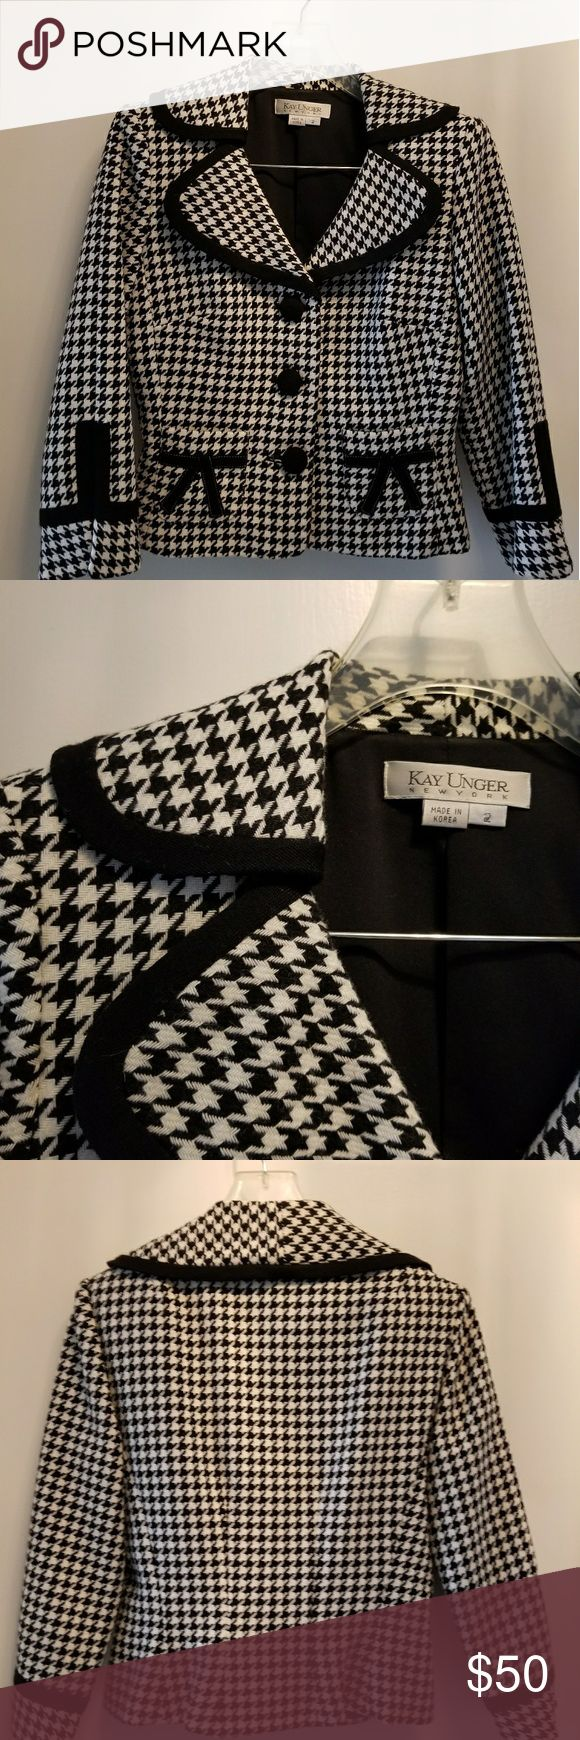 """Kay Unger suit Classic black and soft white houndstooth print.  Black skirt has a """"car wash"""" style hem. Kay Unger Jackets & Coats"""